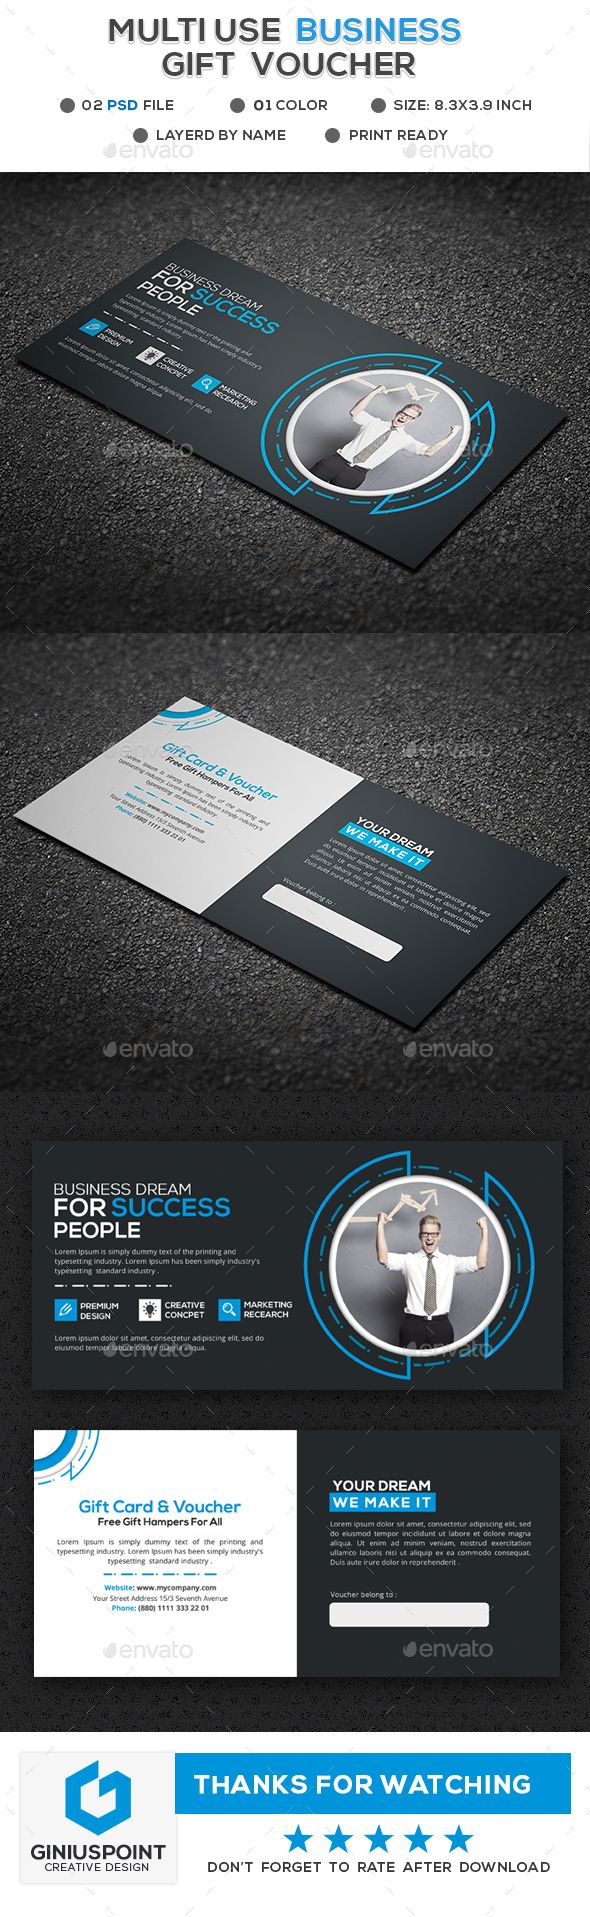 874 best Special Gift Voucher Templates images on Pinterest ...